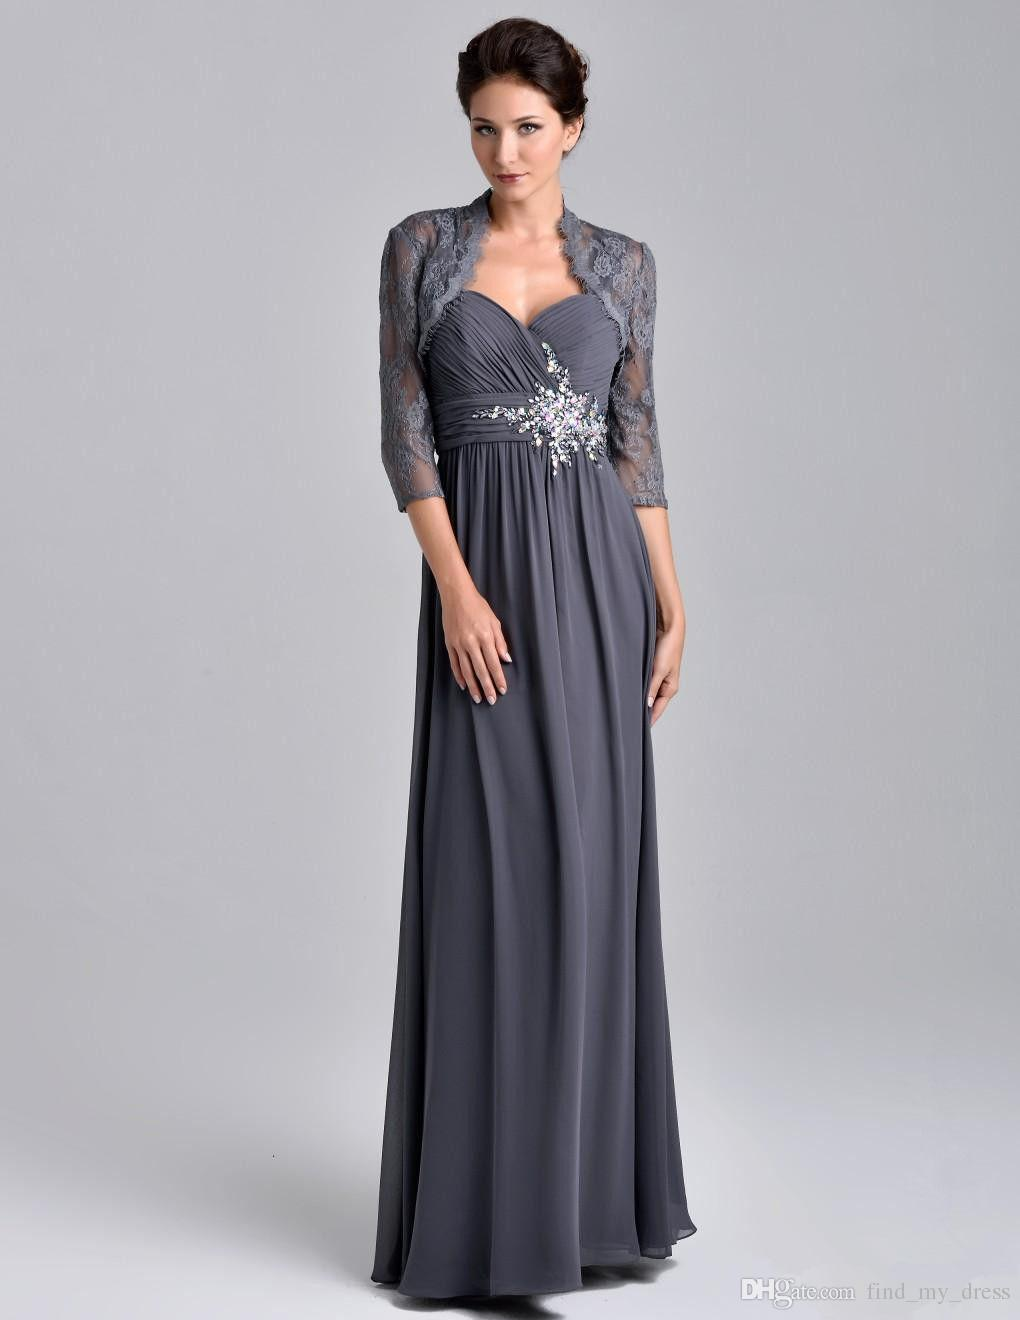 daa4570d9ae 2018 Sweetheart New Crystal Chiffon Gray Mother Of The Bride Dress With  Jacket Lace Floor Length Custom Made Formal Party Gown Best Selling Mother  Of The ...